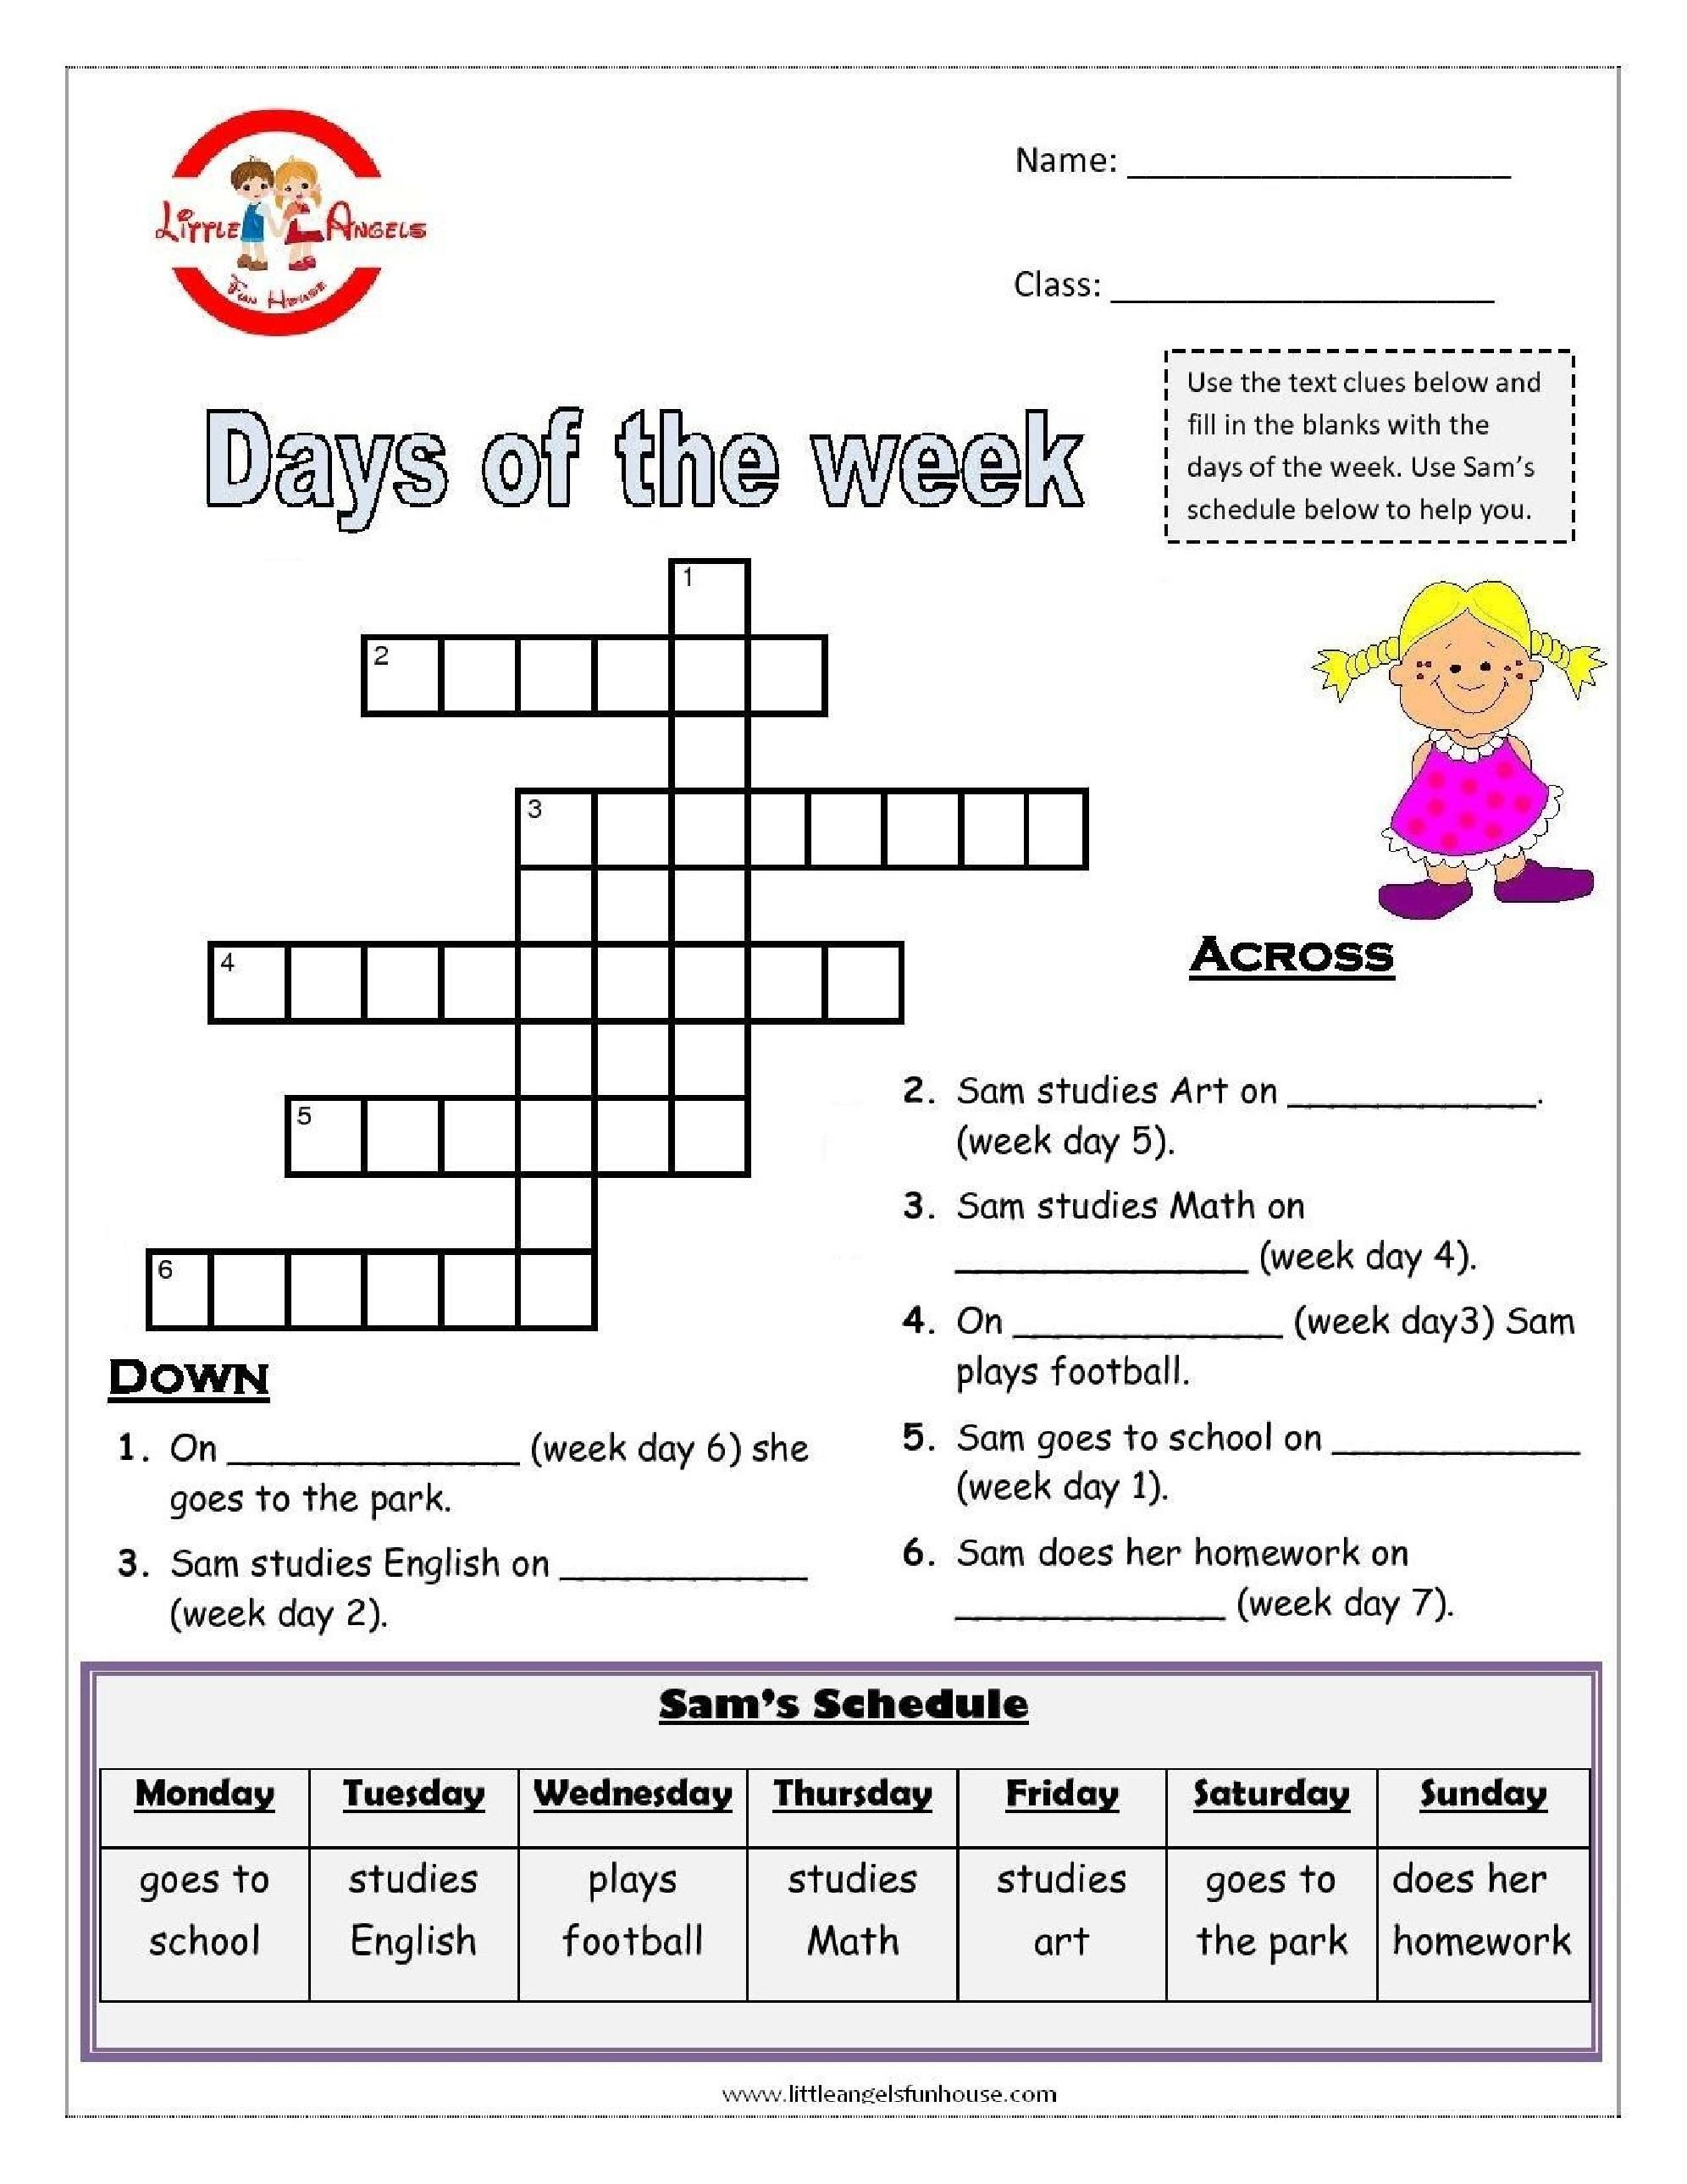 Los Meses En Ingles Days Of The Week English Worksheets Talle